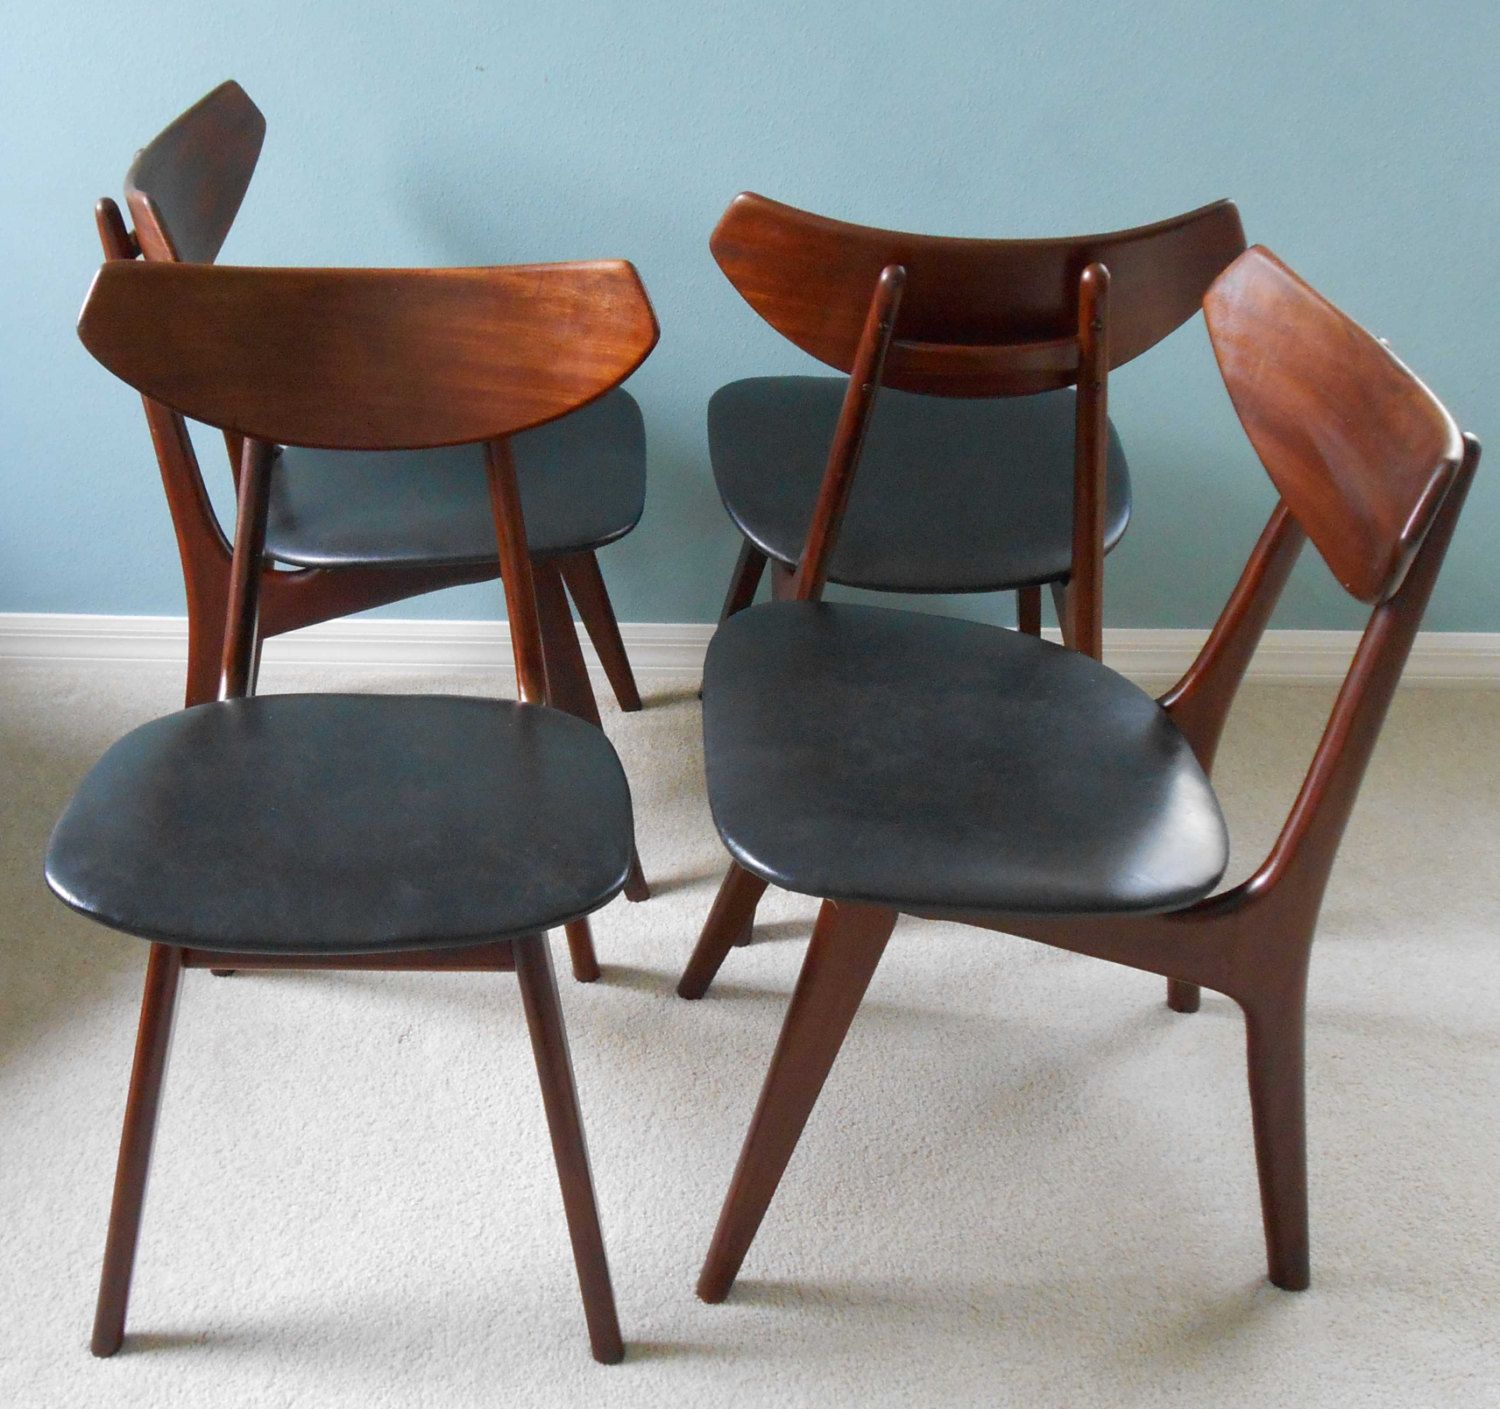 Mid Century Modern Furniture Chair: Mid Century Danish Modern Sculptural Dining Chairs Set Of